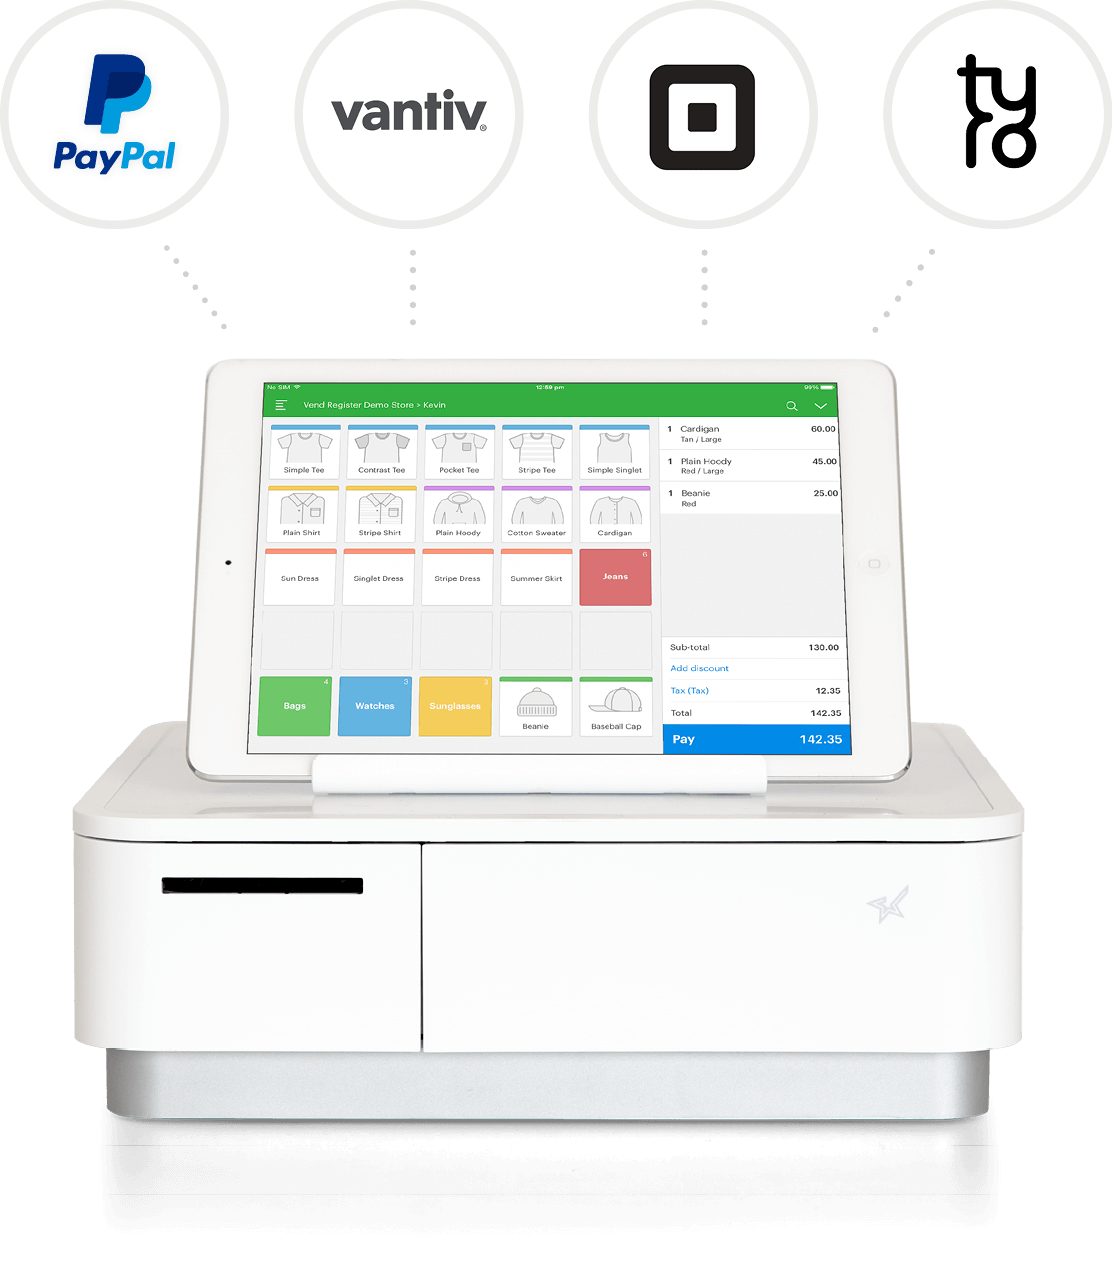 Vend POS merchant providers include PayPal, Vantiv, Square and Tyro